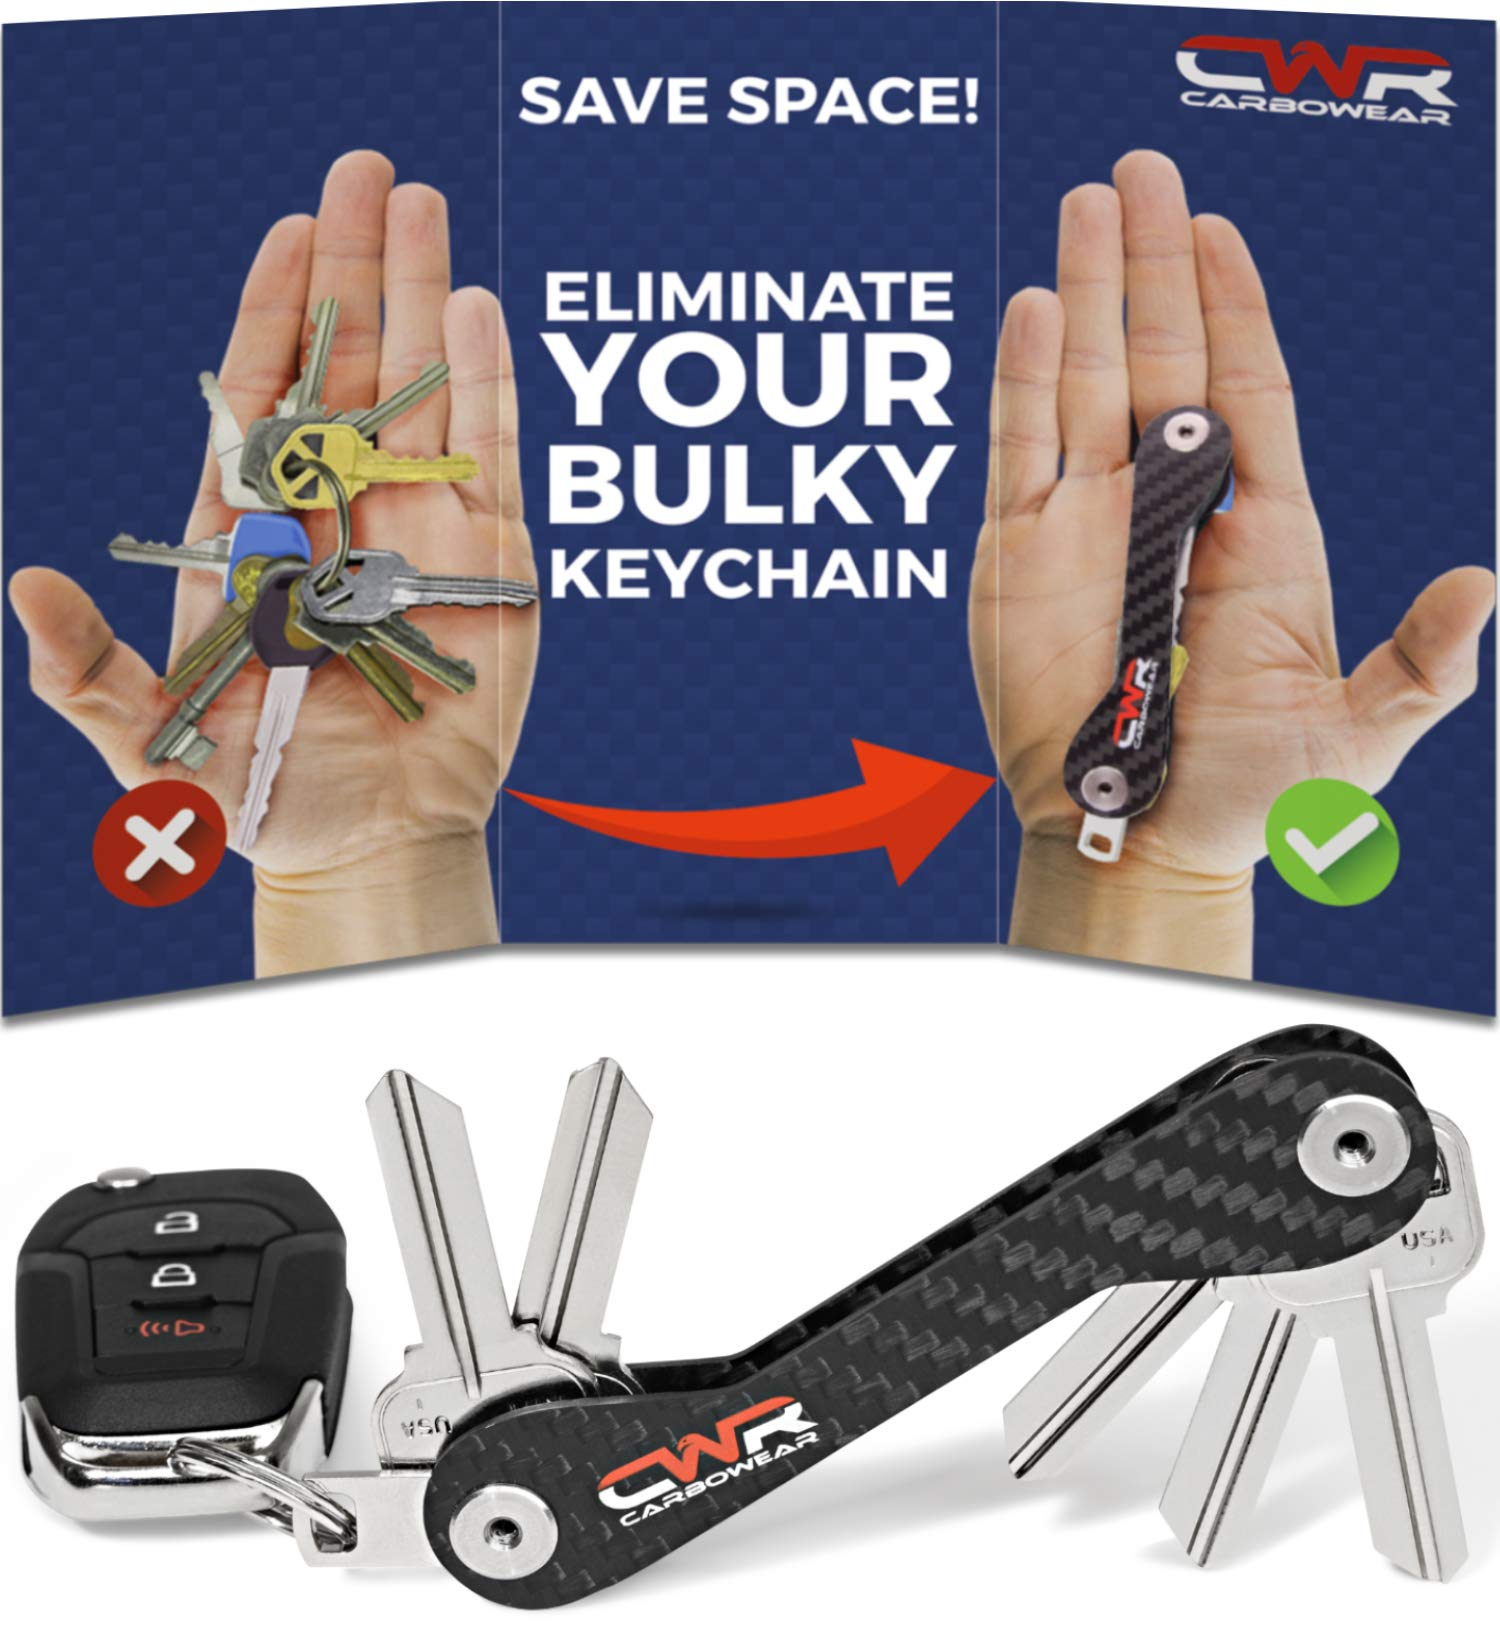 Smart Key Holder Organizer - Loop Piece for Car FOB - Compact Carbon Fiber Keychain up to 22 Keys - Coin Holder, Expansion Pack, SIM and Bottle Opener, Gift Box (Black) by CARBOWEAR